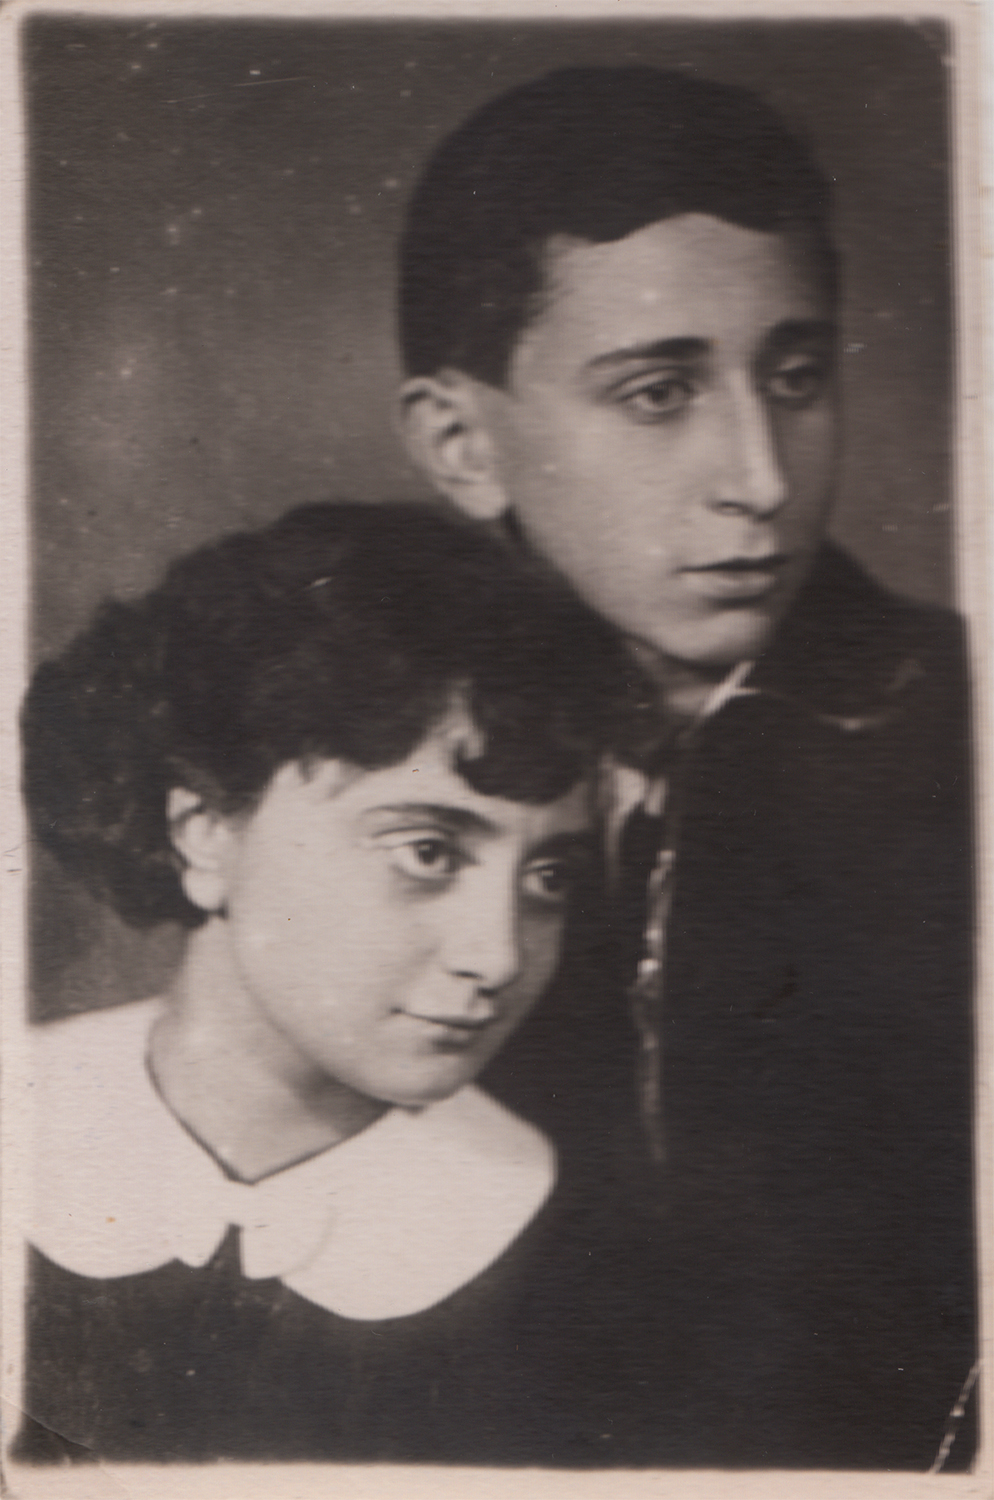 Yuliy and Ida Pinsky, wedding photograph. Kyiv, Ukraine. November 7, 1950